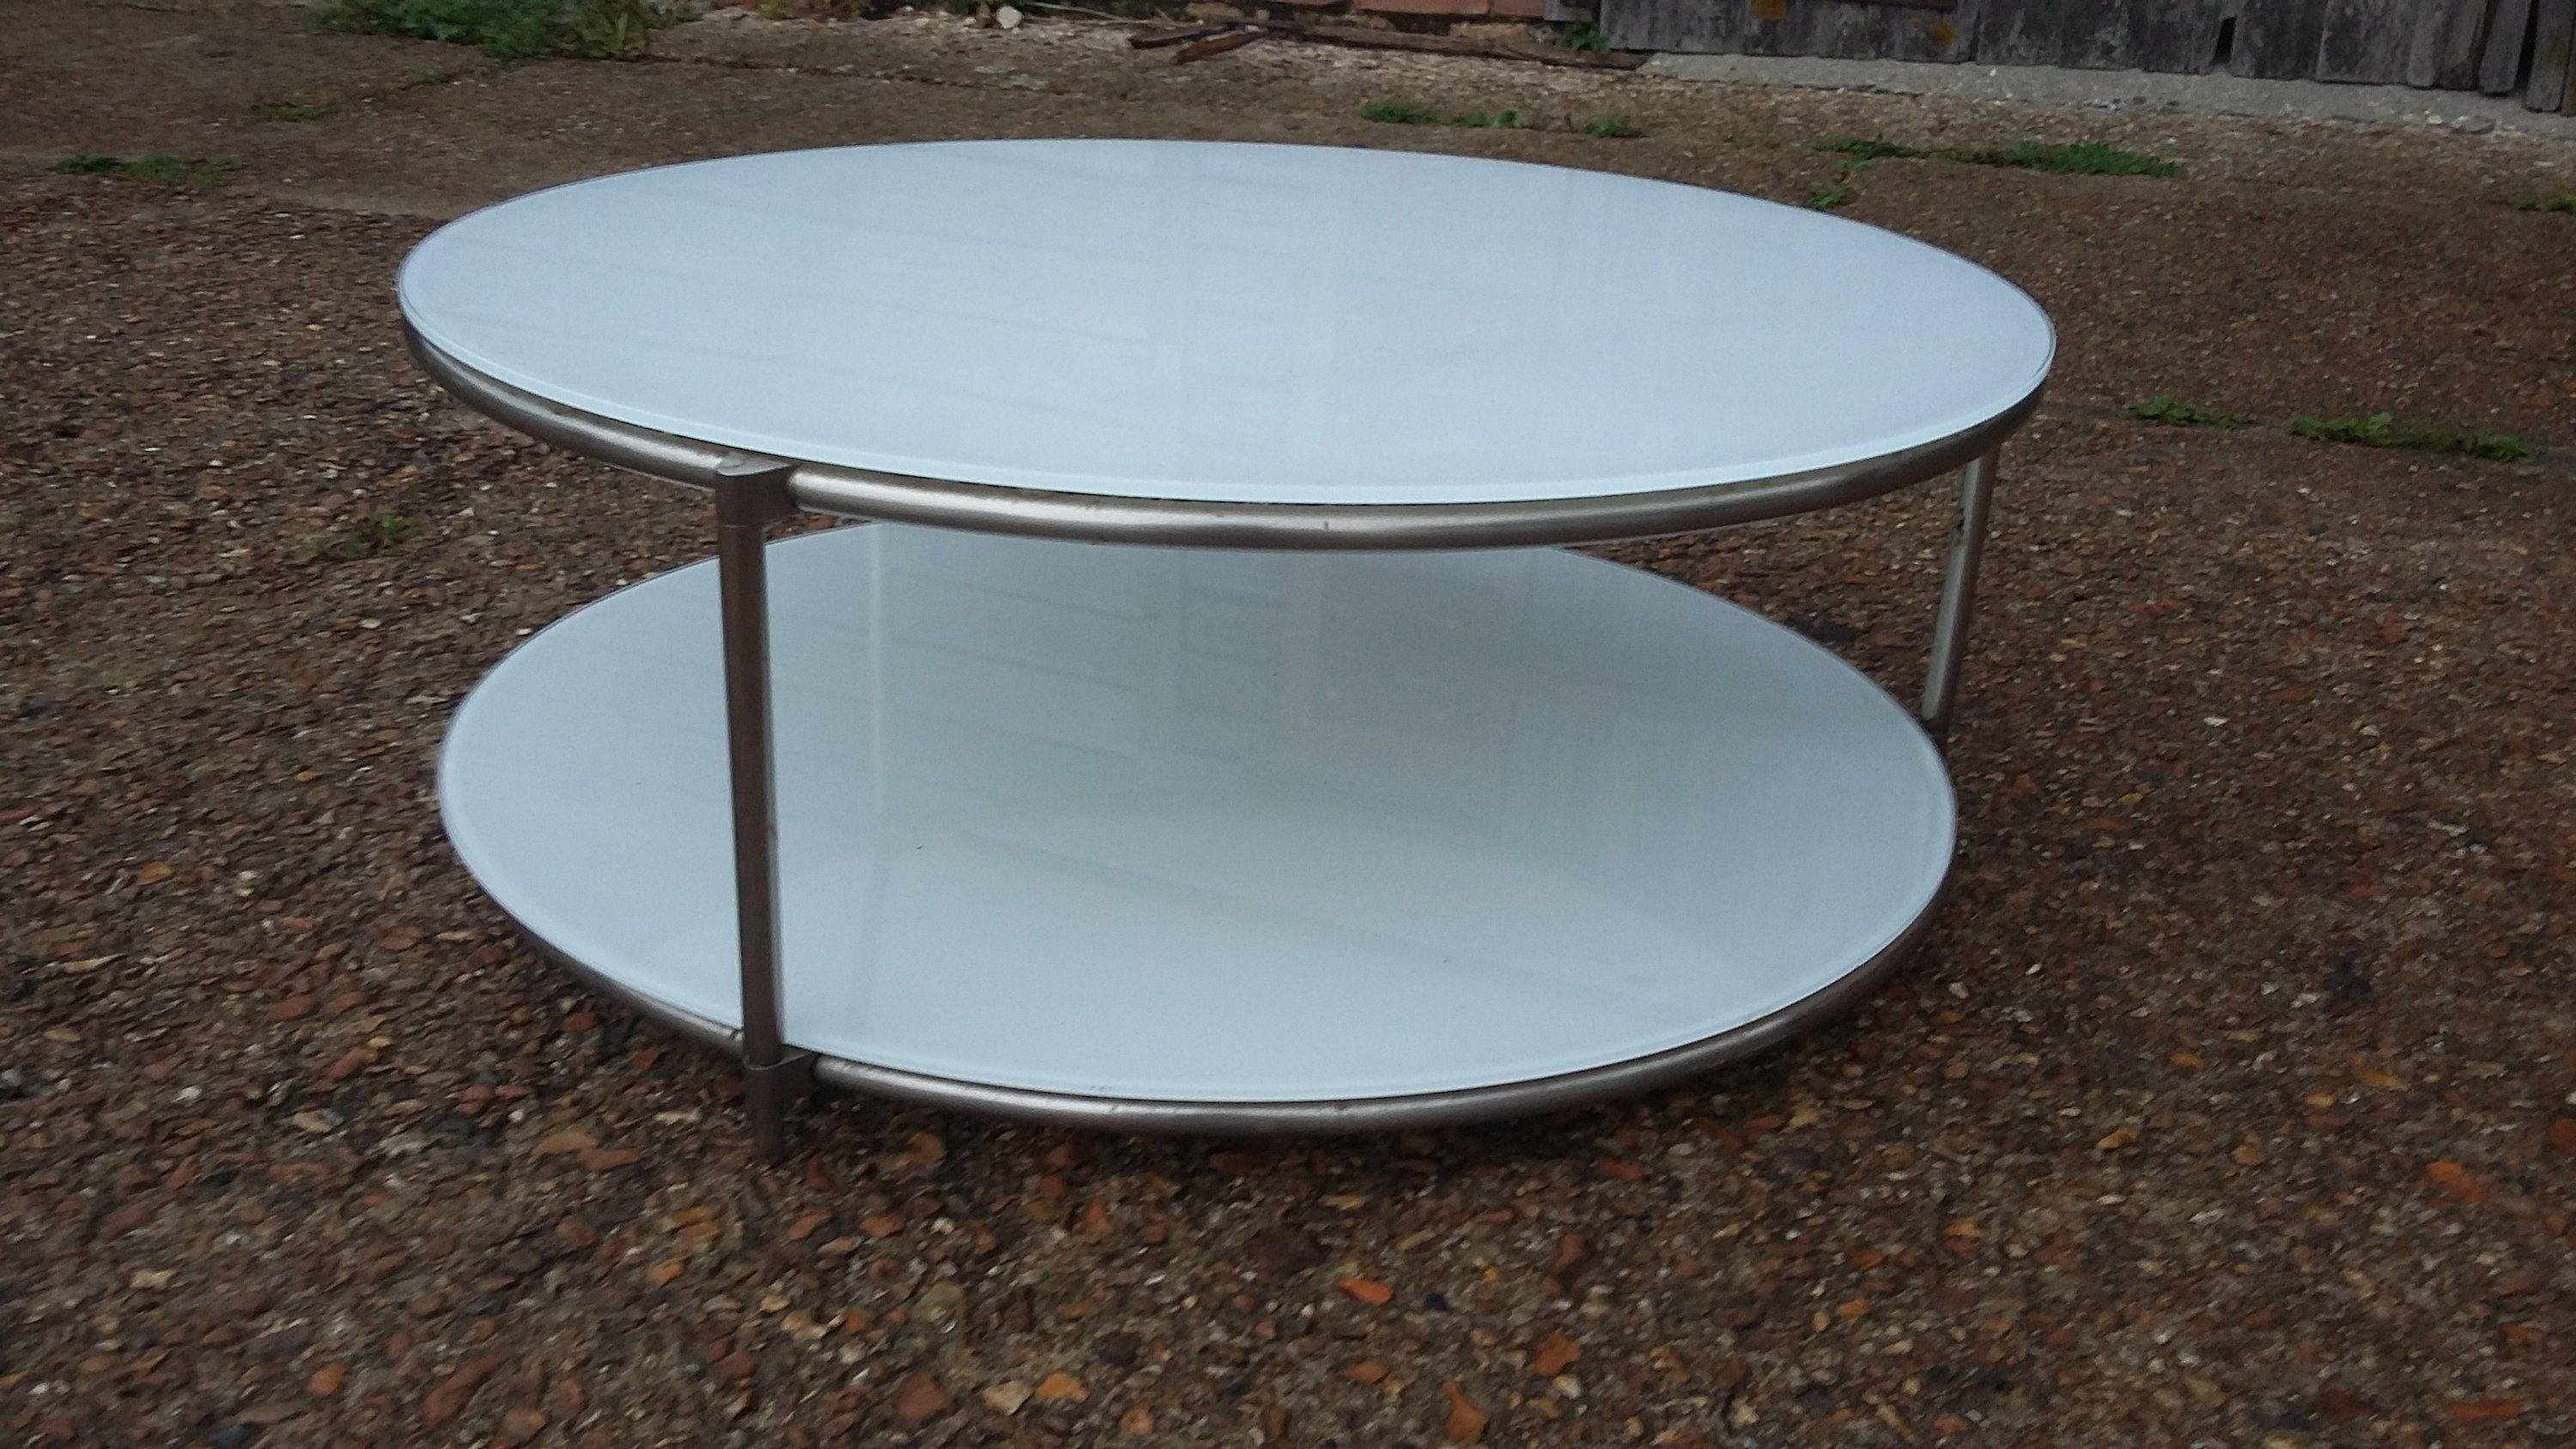 Retro 70s Style Glass Top Round Coffee Table Collection Only Etsy Round Coffee Table Coffee Table Glass Top [ 1687 x 3000 Pixel ]